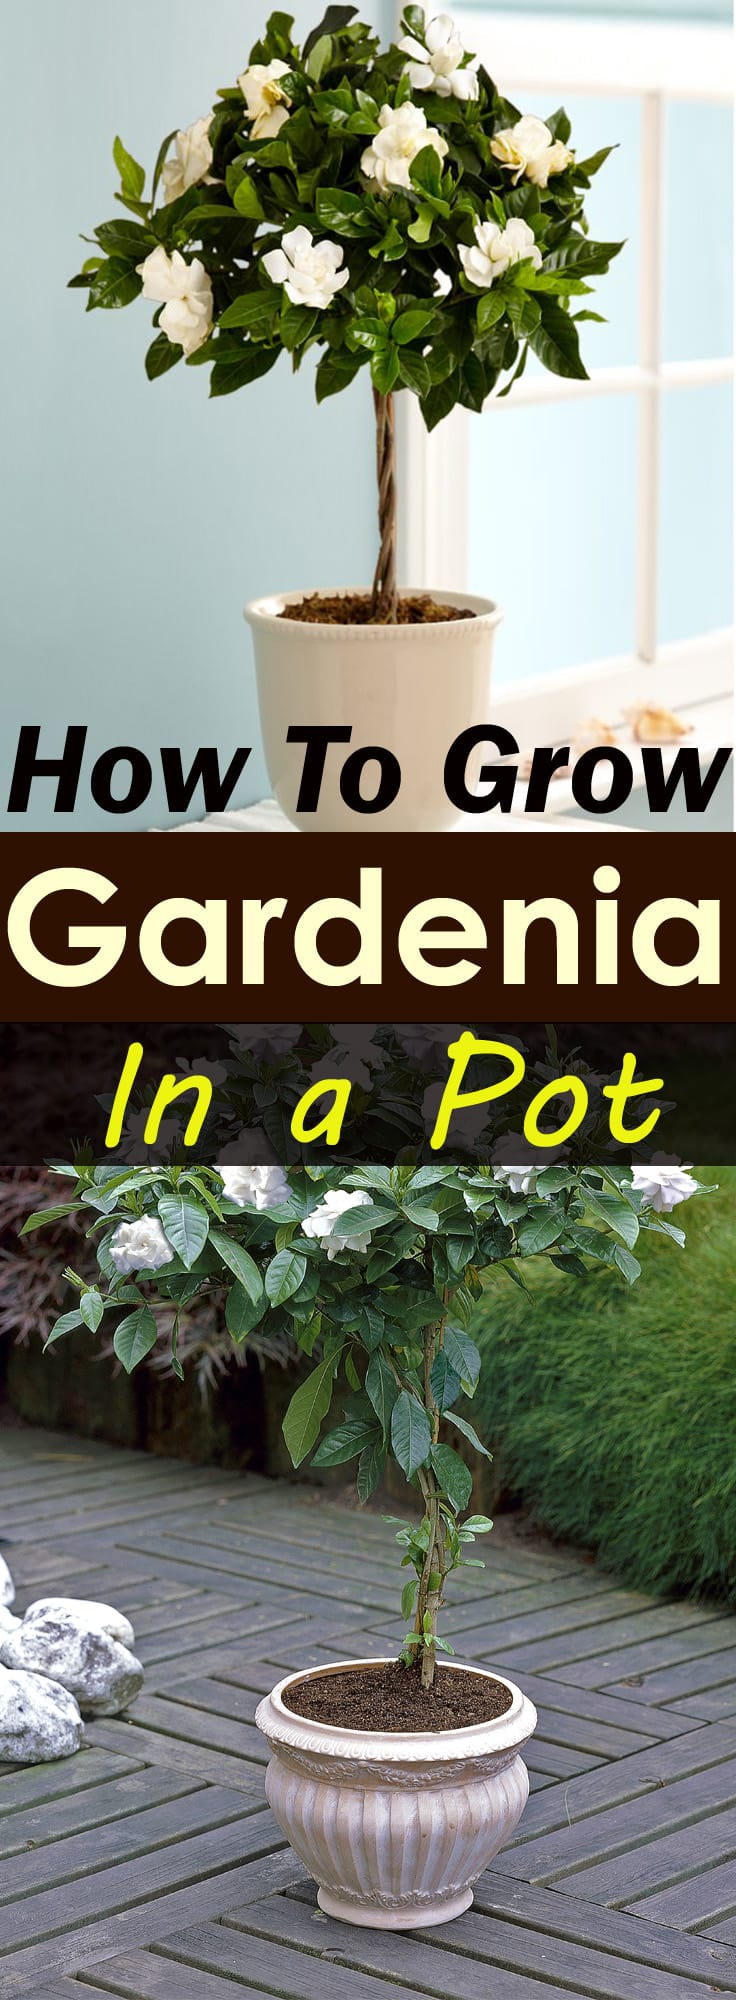 Growing Gardenias In Pots Require Some Care And Attention But They Worth That As Are